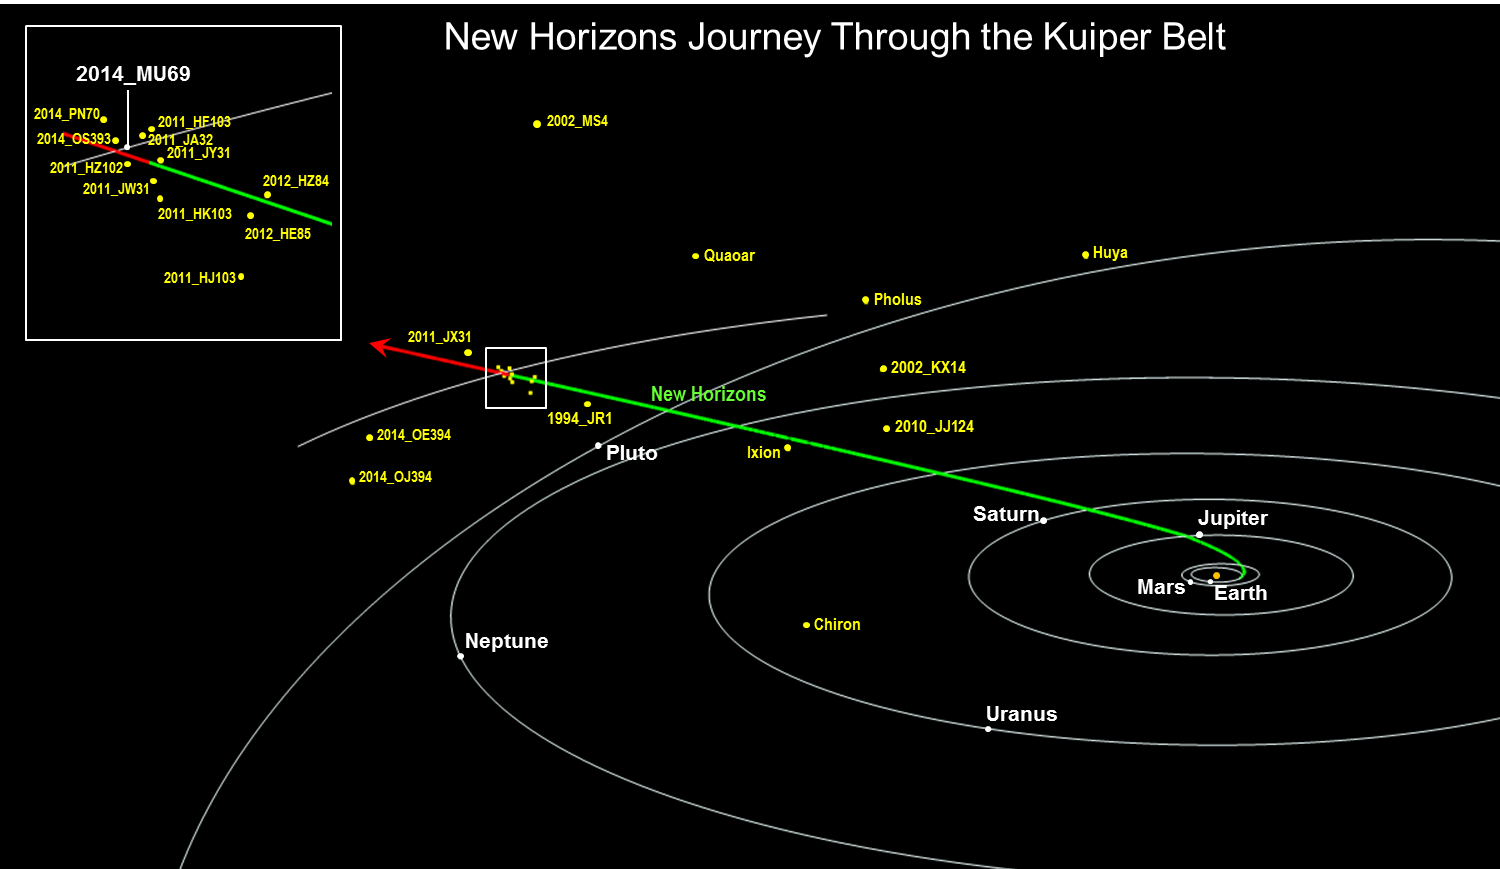 http://pluto.jhuapl.edu/News-Center/PI-Perspectives/images/20181127-01.png